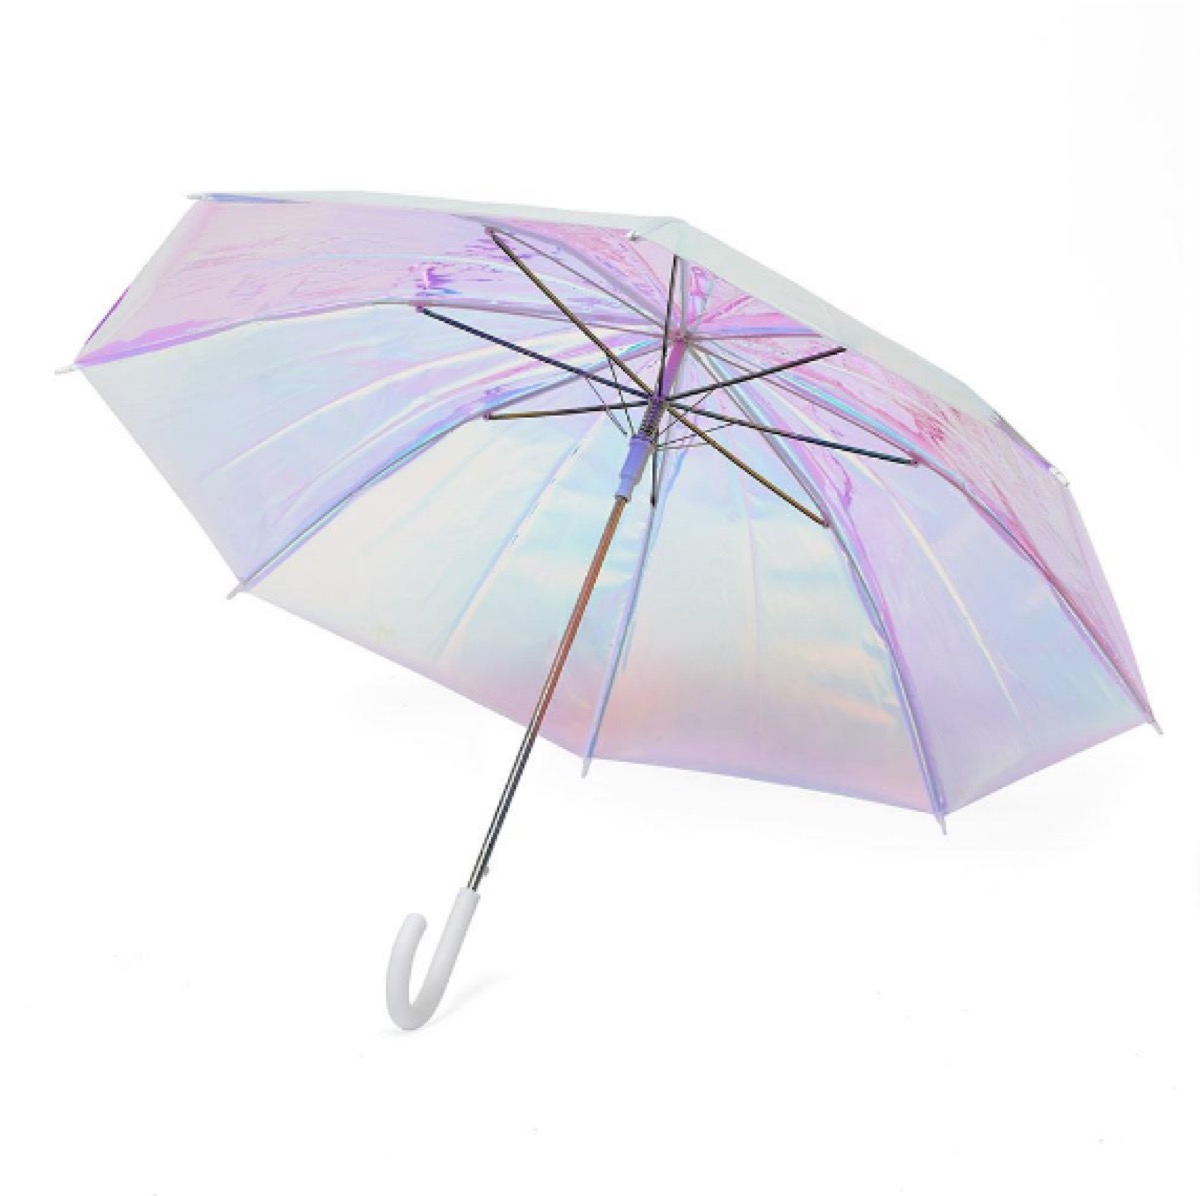 Holo Clear Umbrella buy after holidays